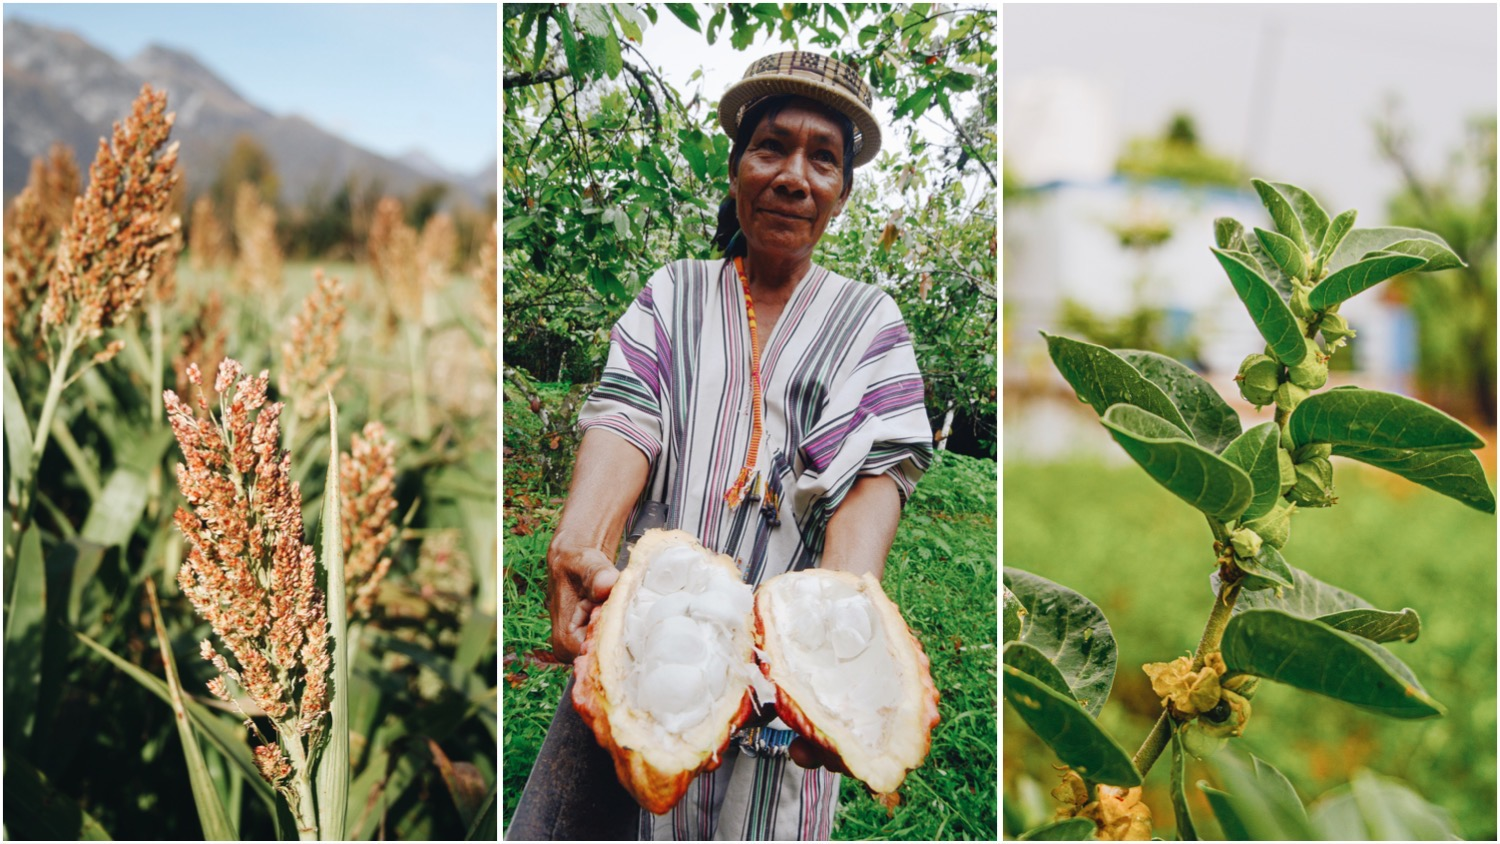 Split image features two photos of superfood plants, sorghum (left), and ashwagandha (right), with the Ashaninka tribe's Tomas Bardales holding organic cocoa fruit (center).